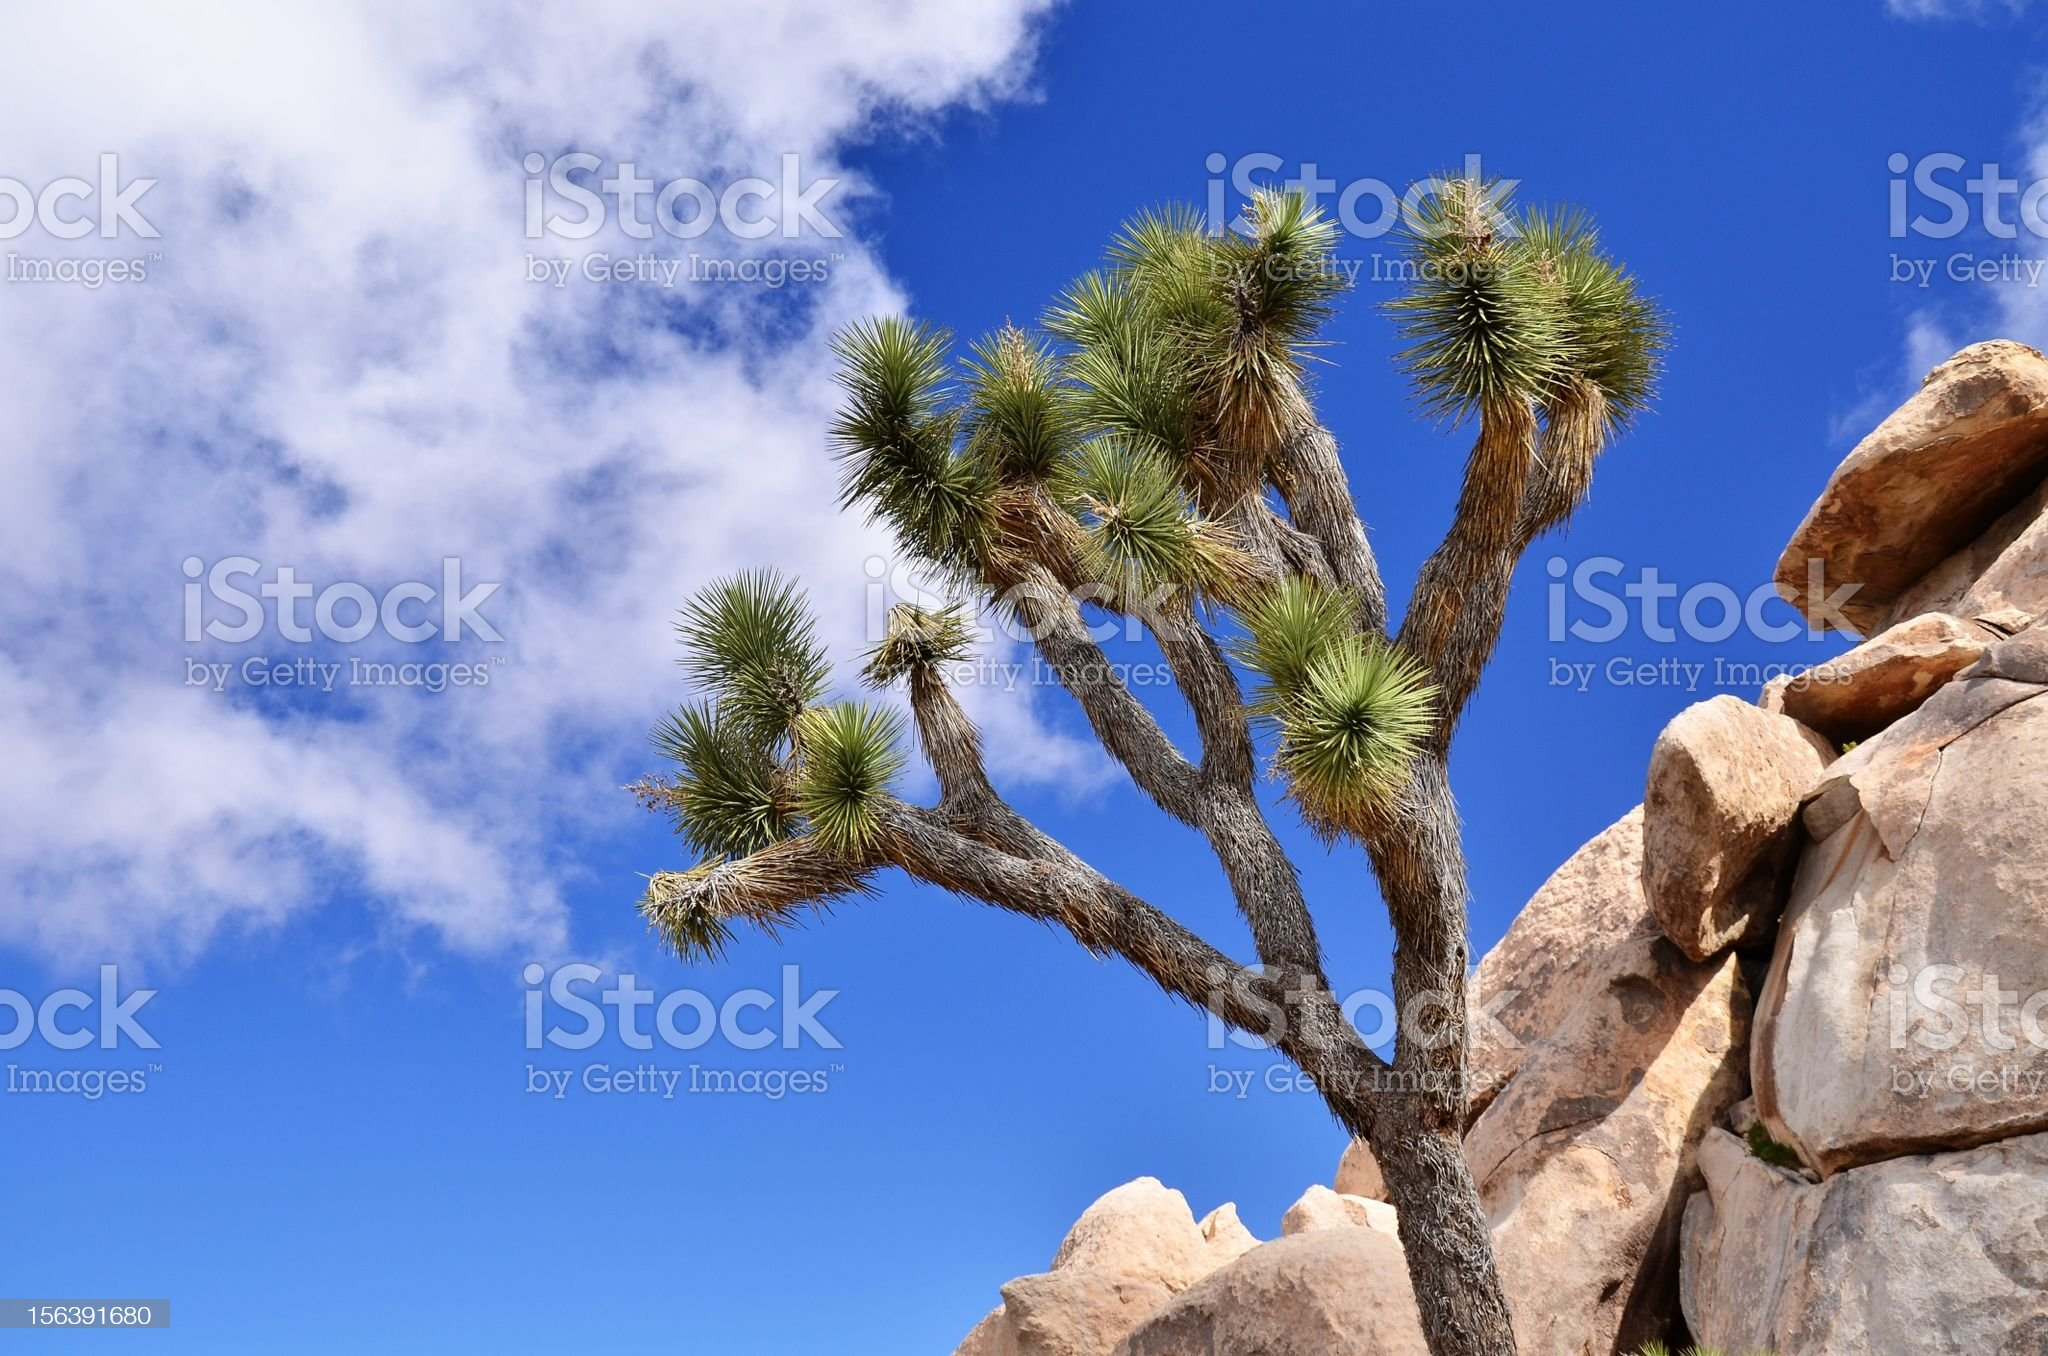 Joshue Tree and rocks in the desert, detail royalty-free stock photo